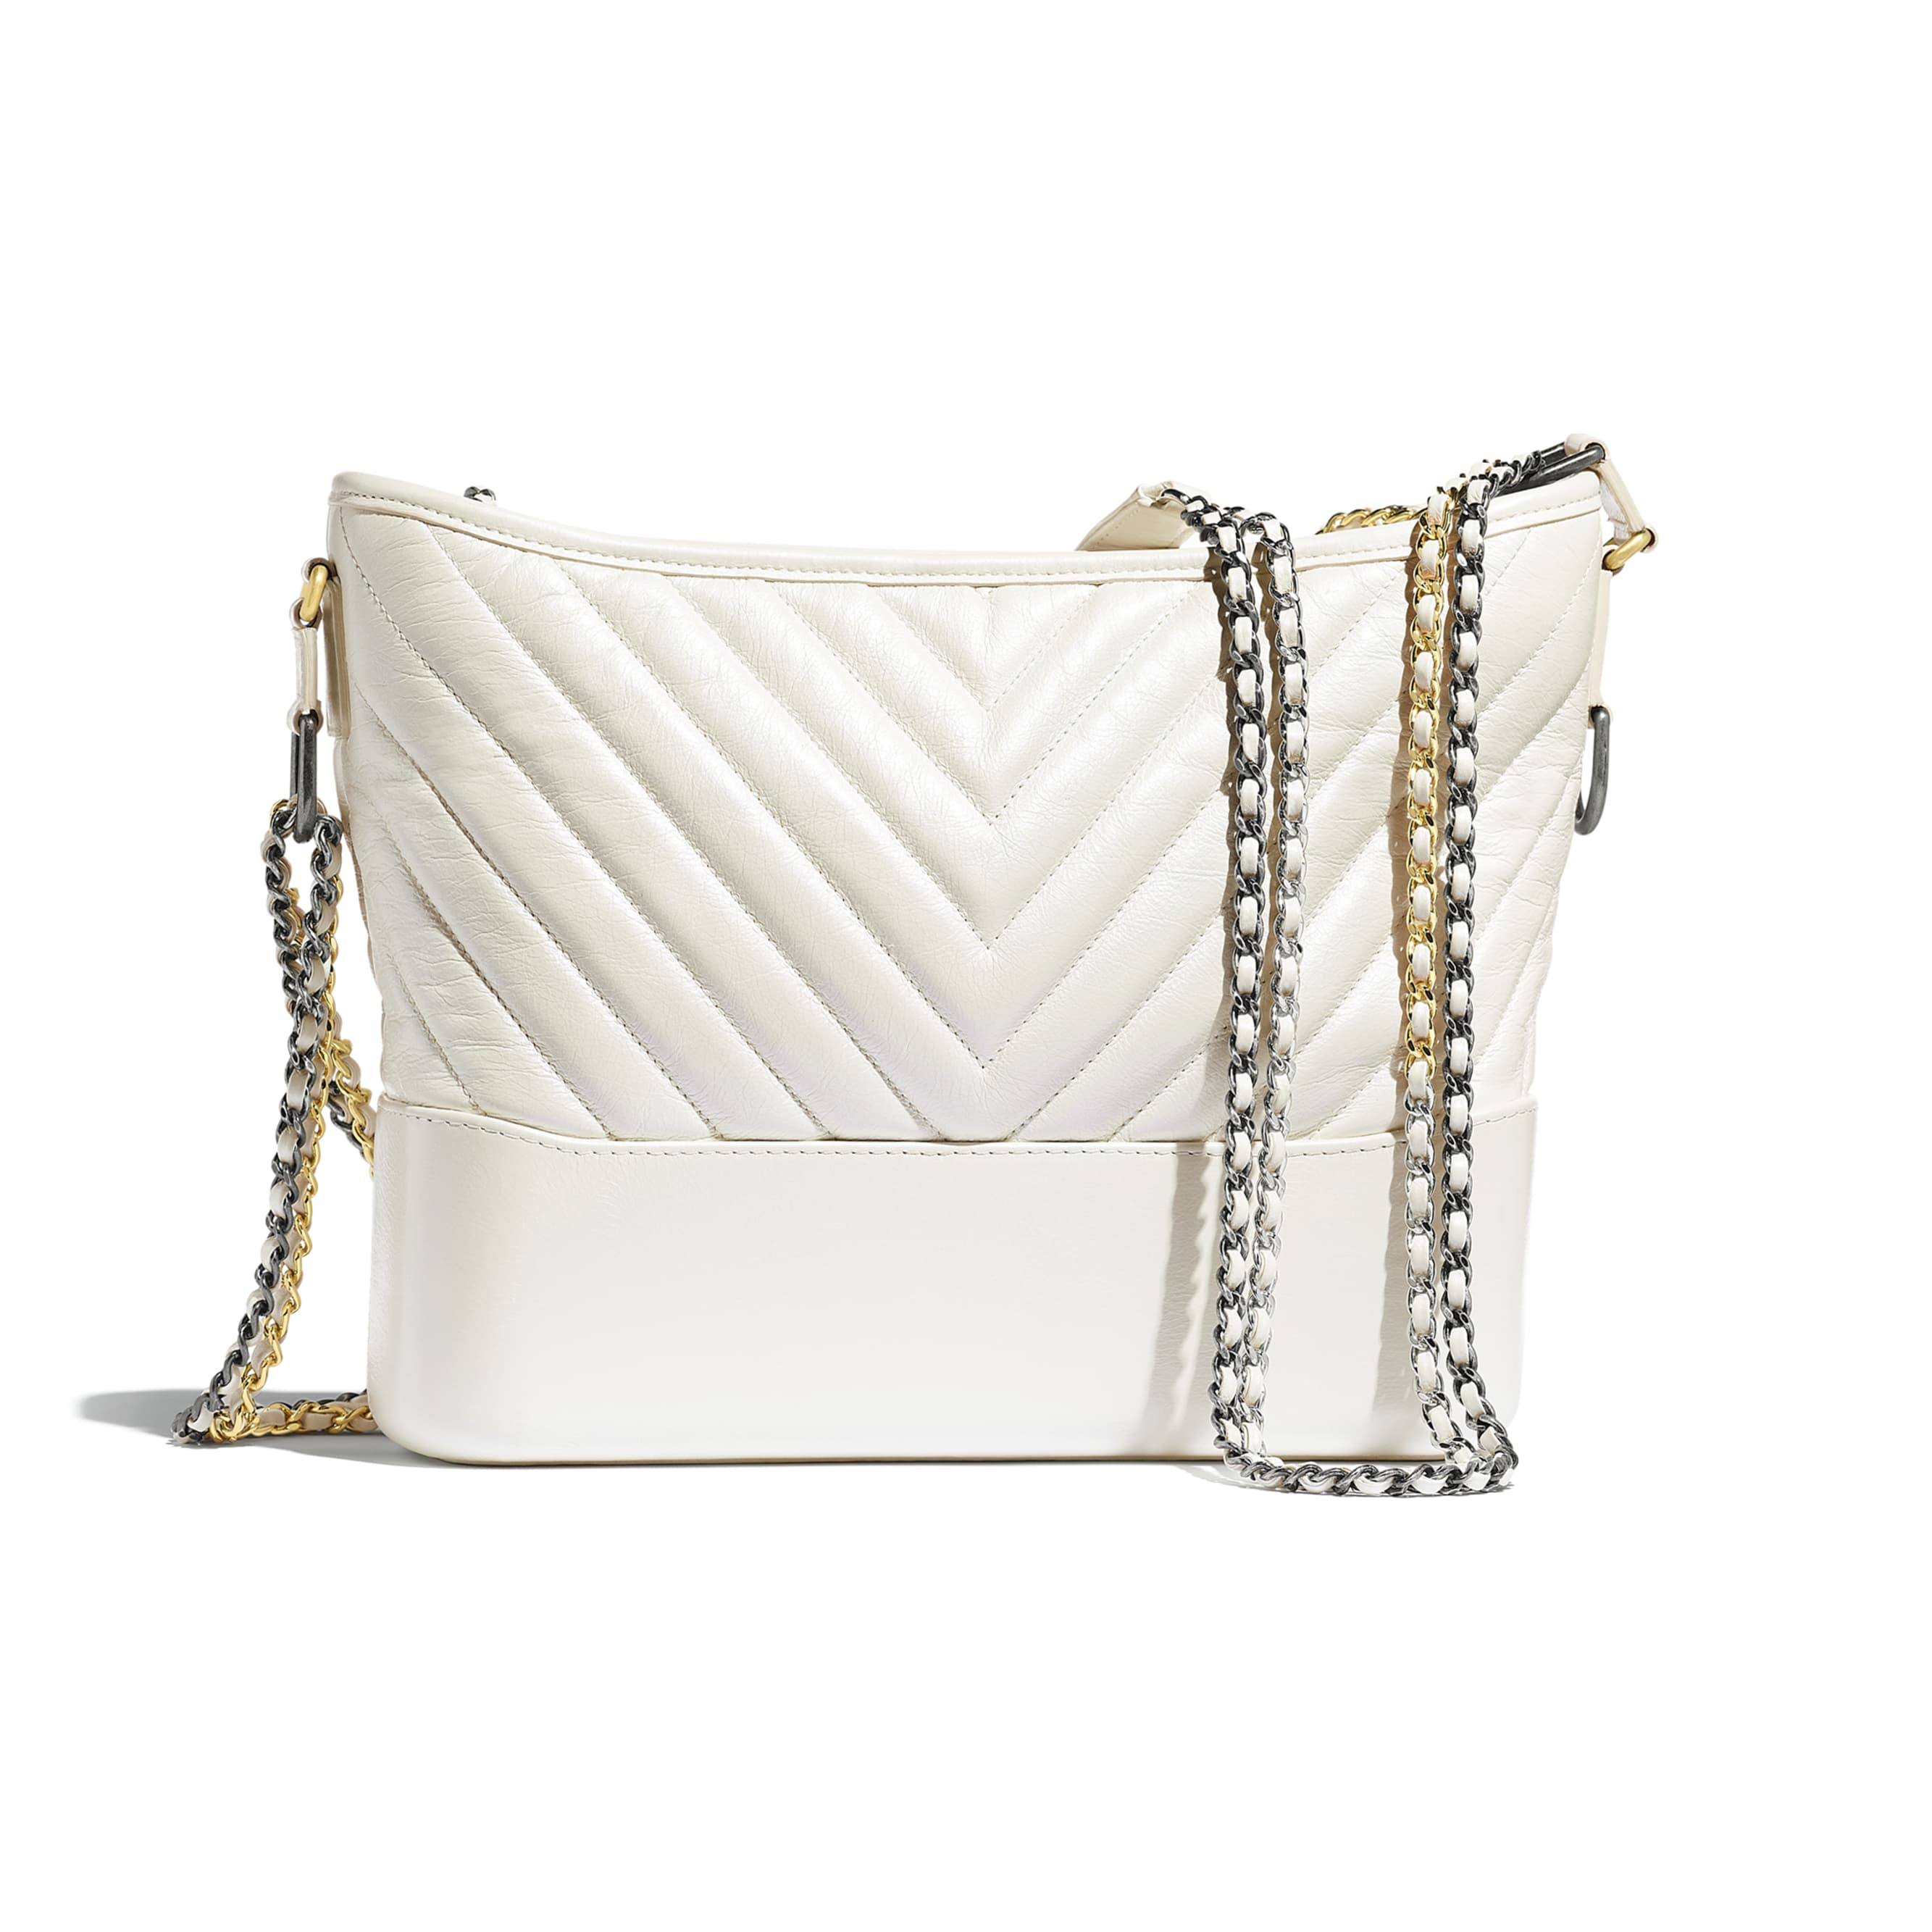 CHANEL'S GABRIELLE Large Hobo Bag - White - Metallic Crumpled Calfskin, Gold-Tone & Silver-Tone Metal - Alternative view - see standard sized version